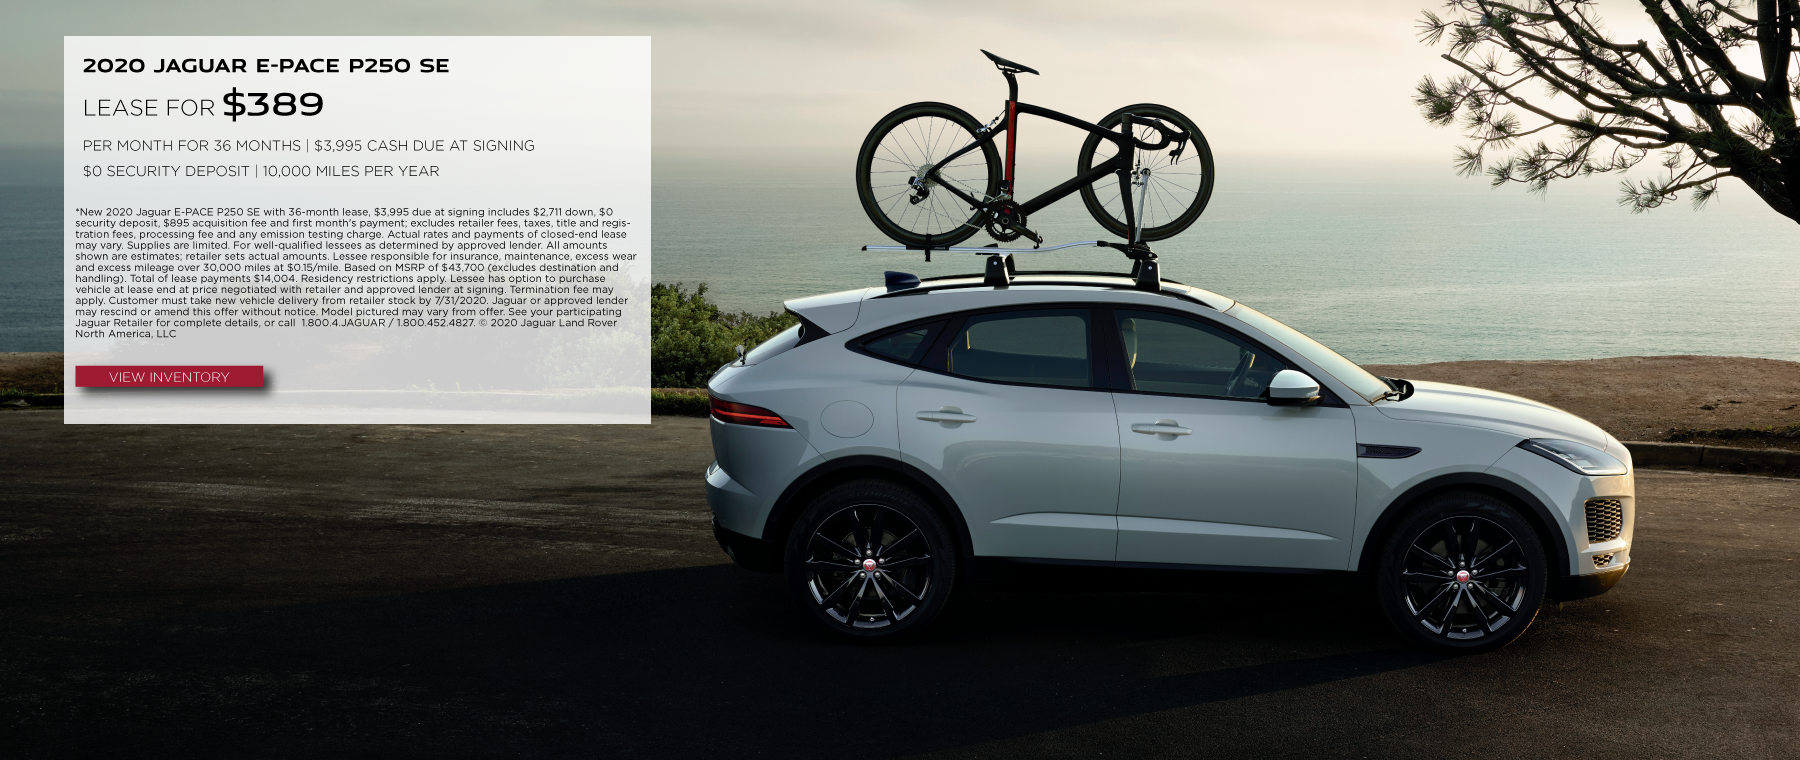 2020 JAGUAR E-PACE P250 SE. $369 PER MONTH. 36 MONTH LEASE TERM. $3,995 CASH DUE AT SIGNING. $0 SECURITY DEPOSIT. 10,000 MILES PER YEAR. EXCLUDES RETAILER FEES, TAXES, TITLE AND REGISTRATION FEES, PROCESSING FEE AND ANY EMISSION TESTING CHARGE. OFFER ENDS 7/31/2020. VIEW INVENTORY. WHITE JAGUAR E-PACE DRIVING DOWN ROAD OVERLOOKING MOUNTAINS.